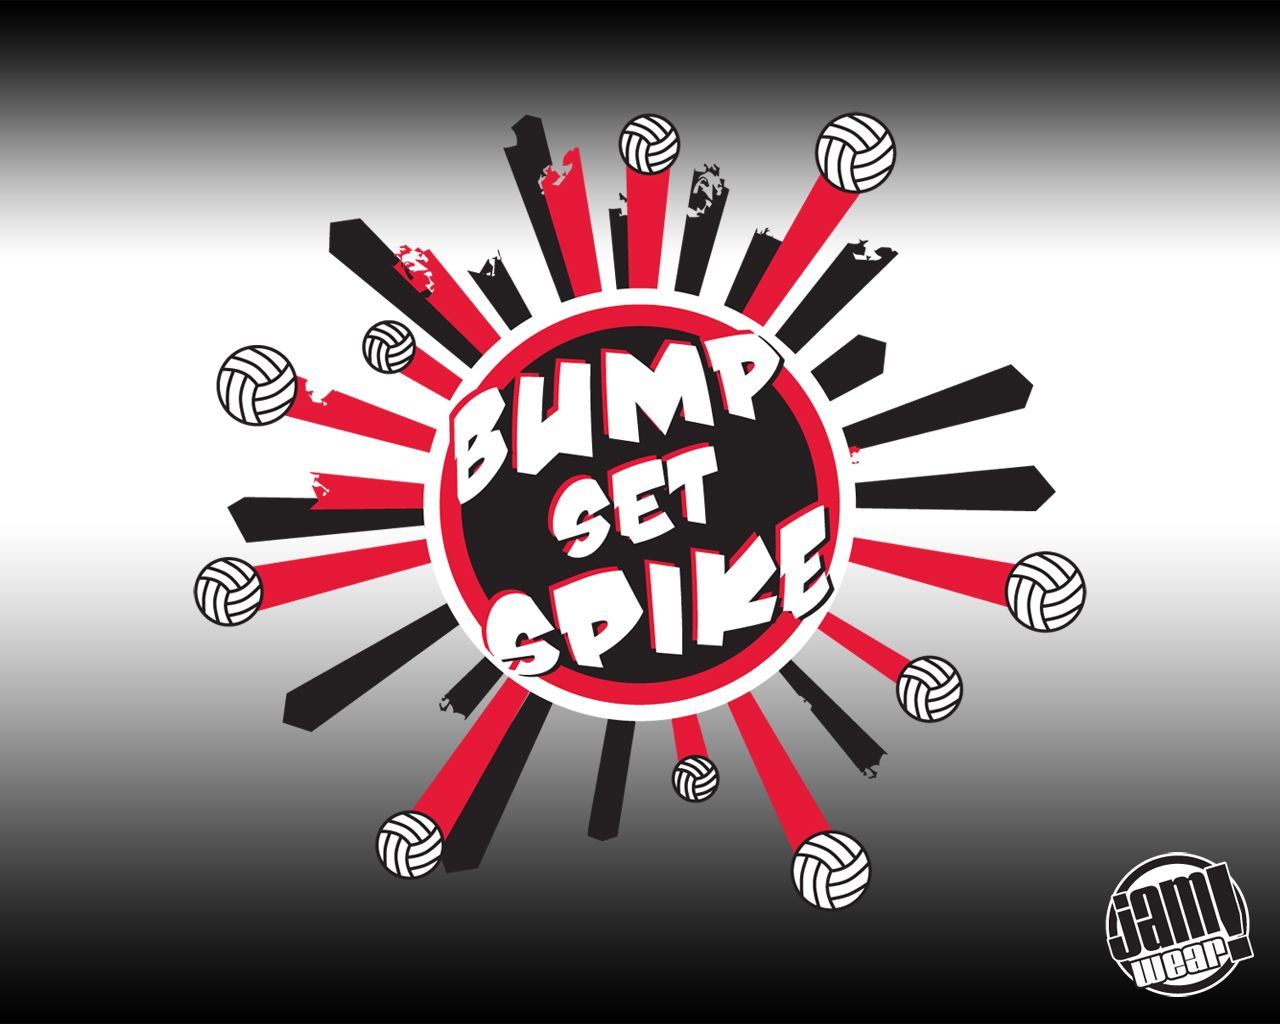 Bump Set Spike Volleyball Volleyball With Images Cool Volleyball Wallpapers Volleyball Wallpaper New Wallpaper